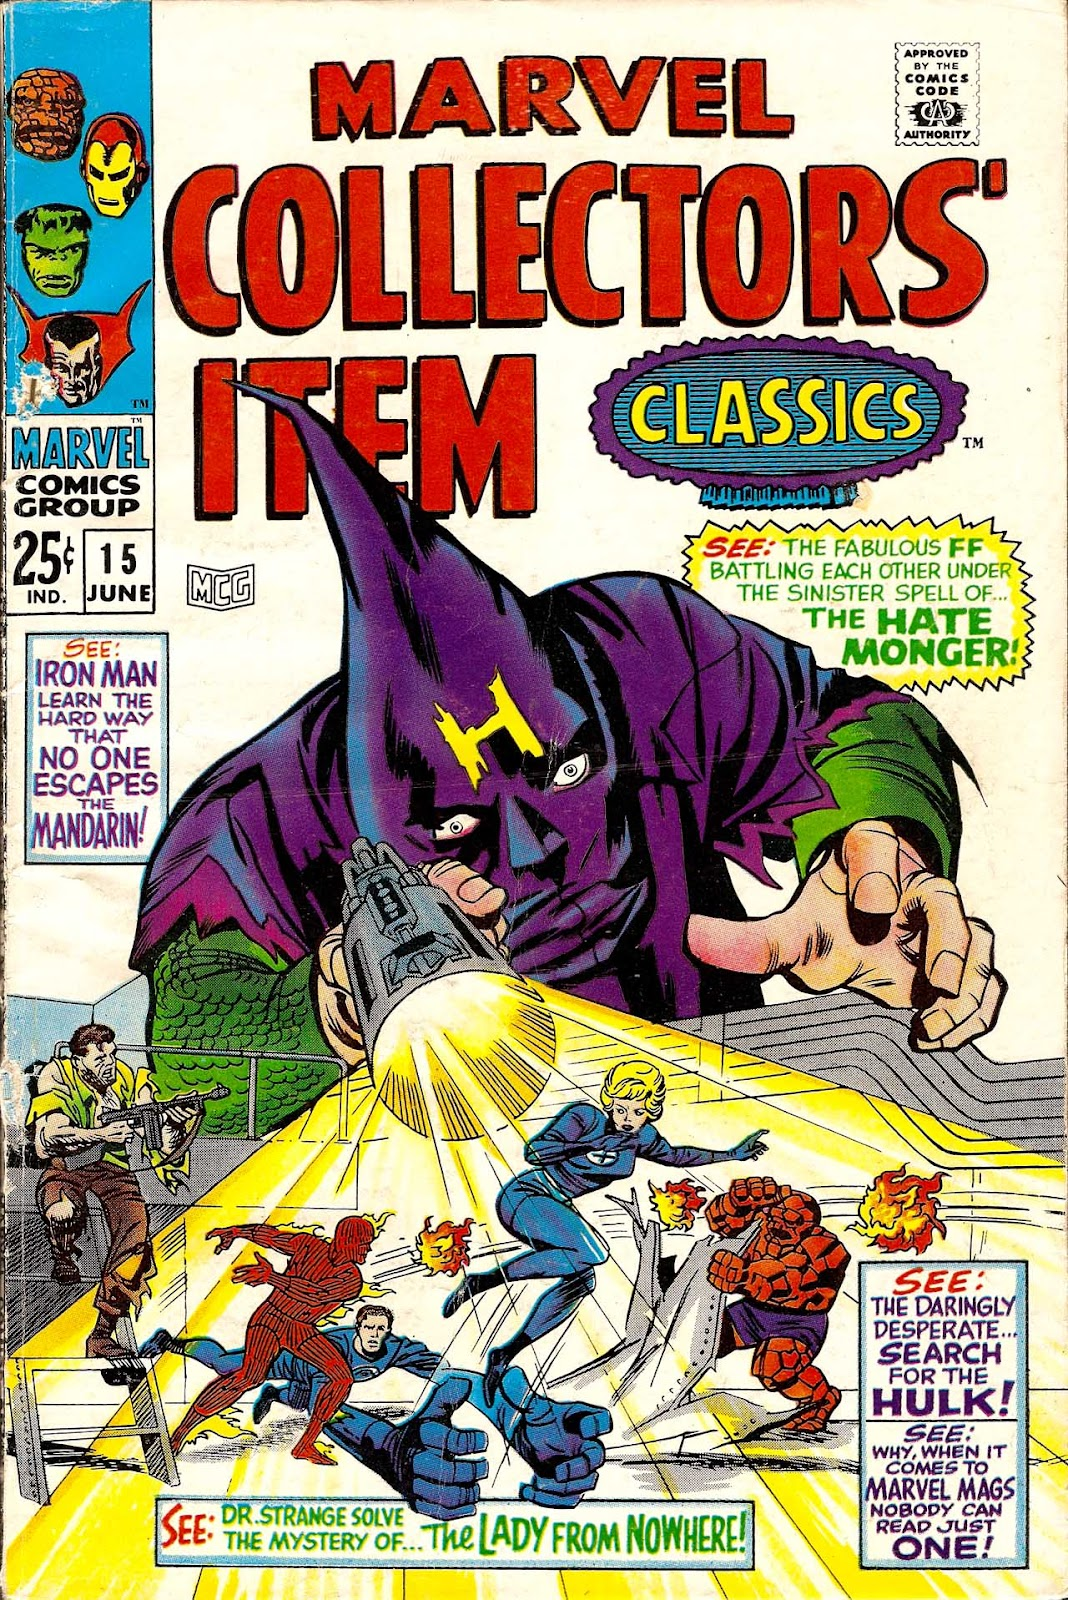 Marvel Collectors Item Classics 15 Page 1